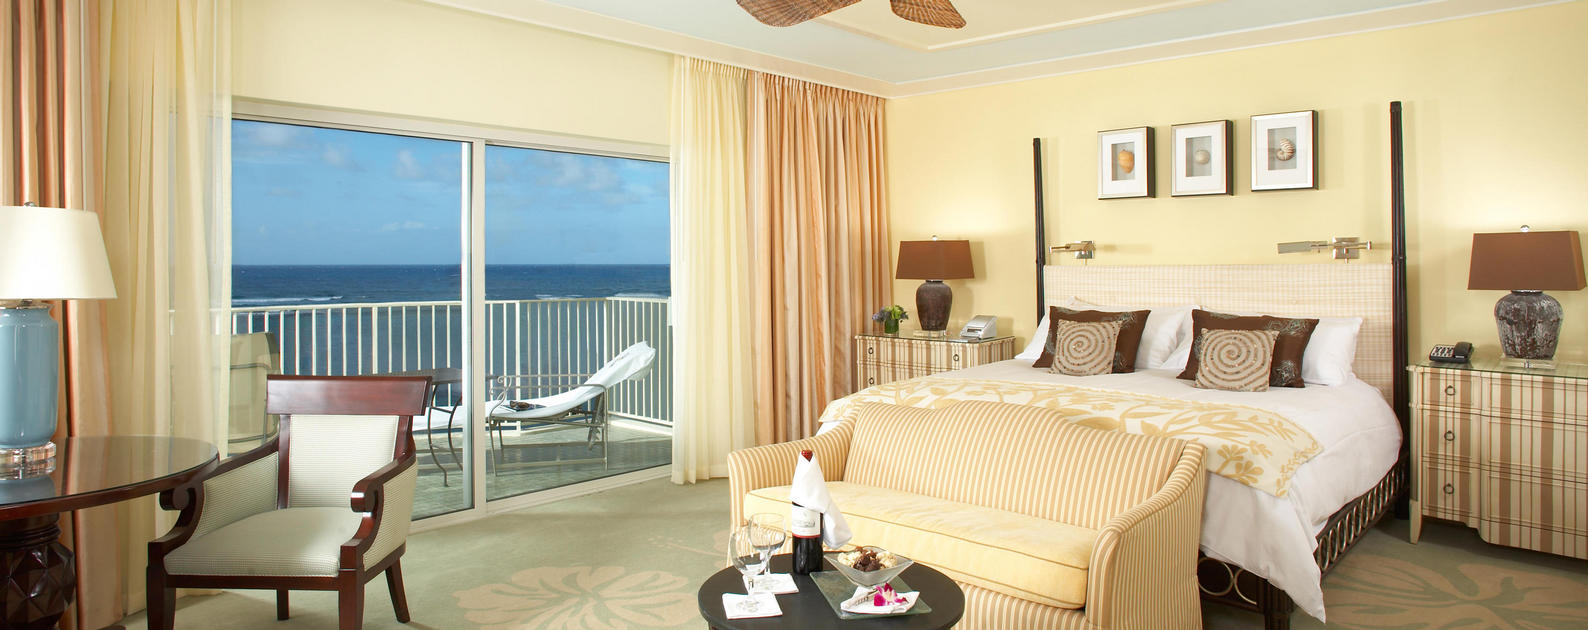 Kahala Room Vacation Trip Deals